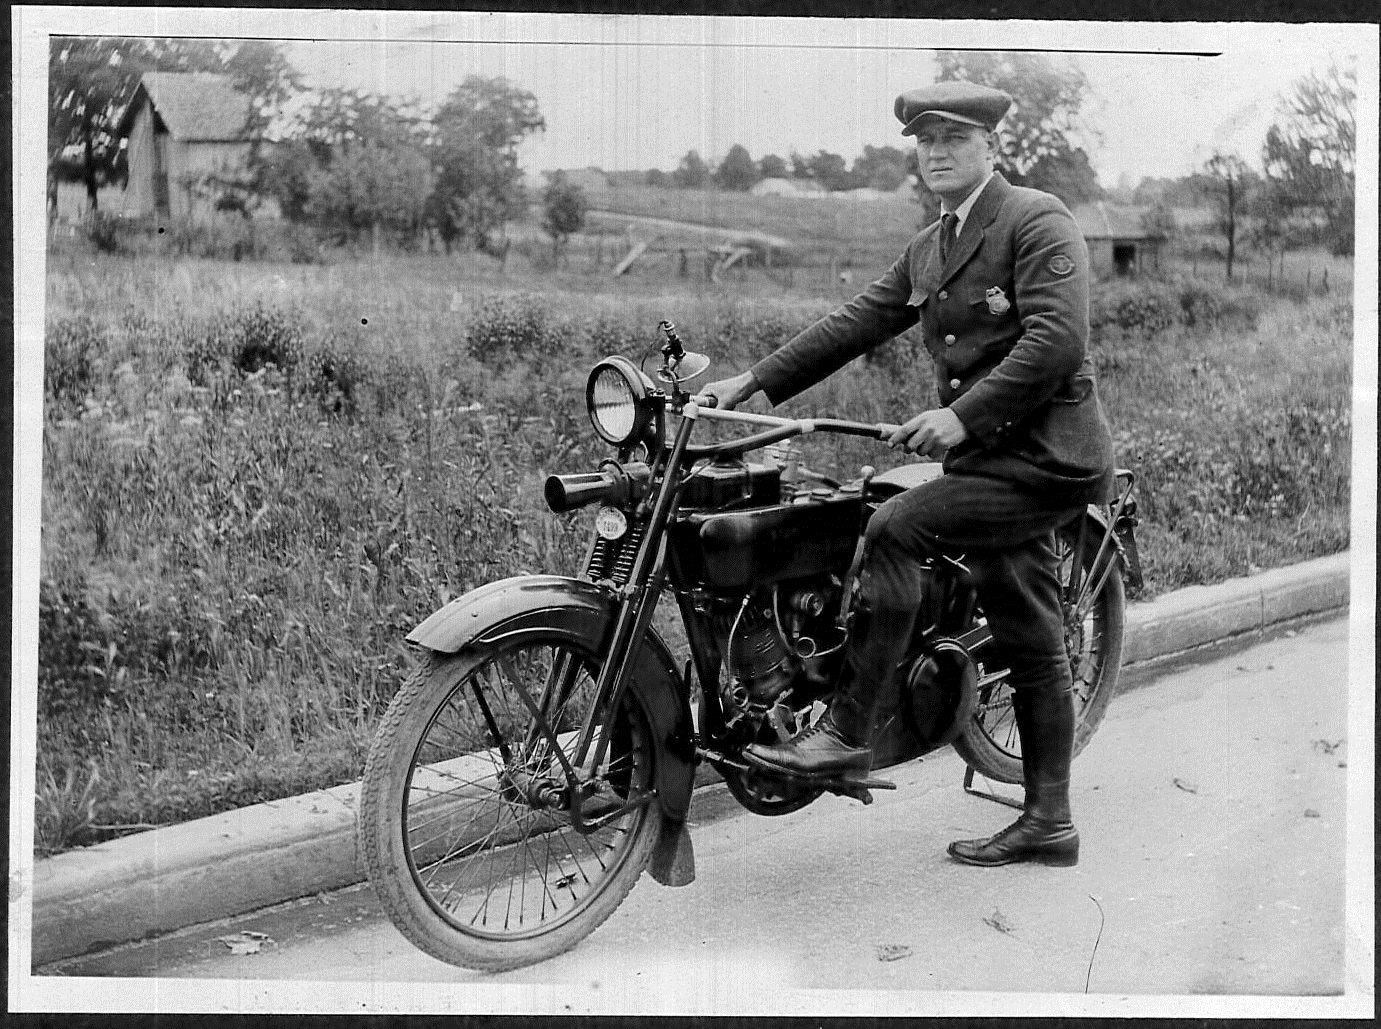 Motorcycle Ofc Cowart.png